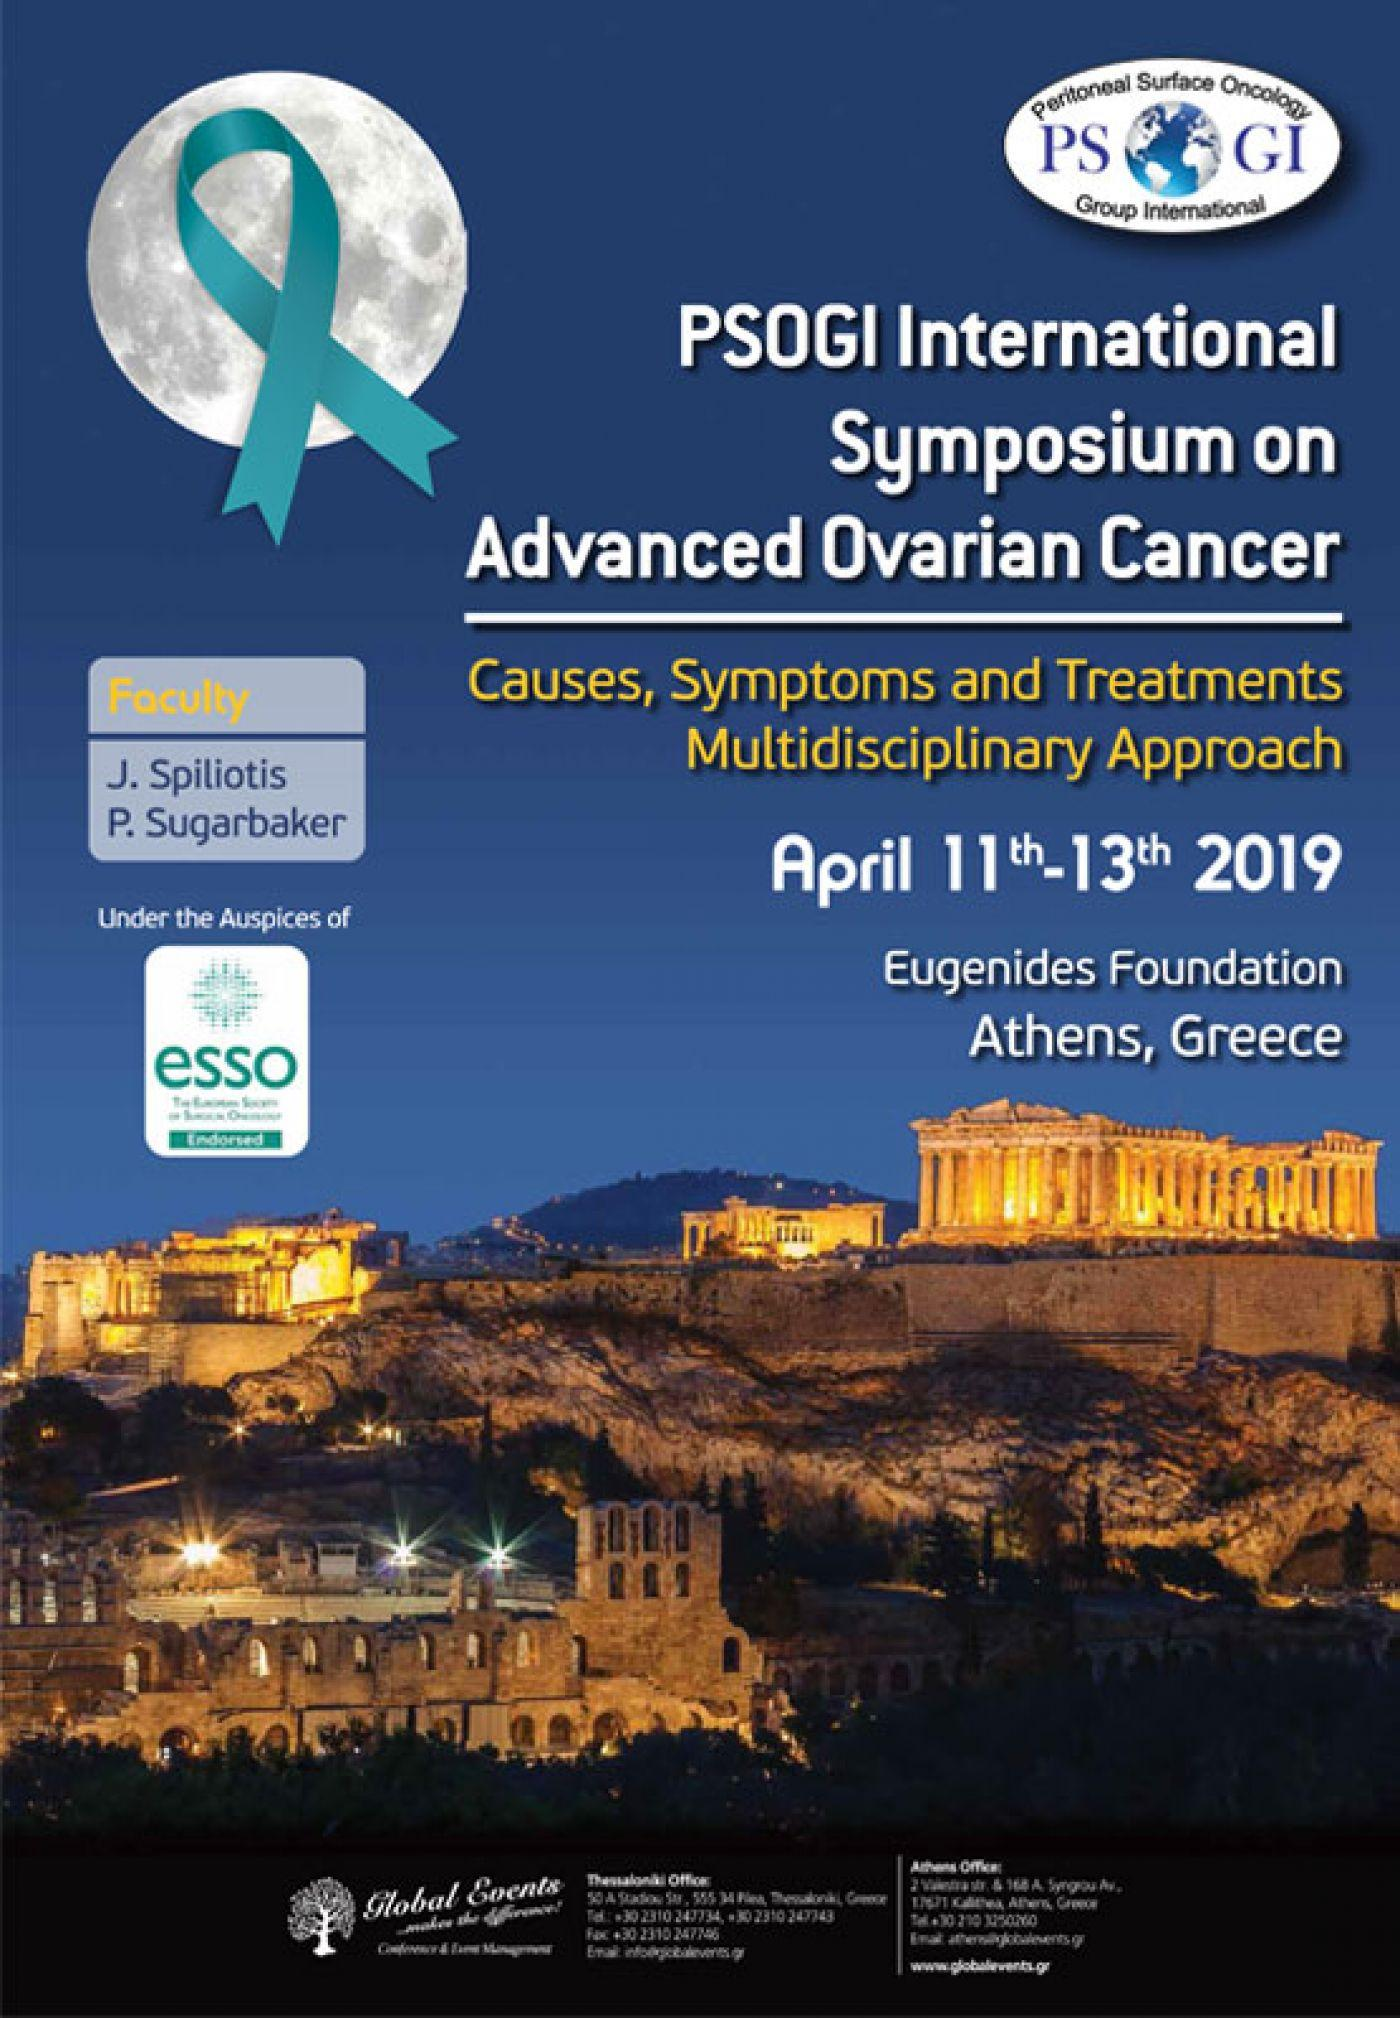 PSOGI International Symposium on Advanced Ovarian Cancer, Symptoms and Treatments Multidisciplinary Approach, Ίδρυμα Ευγενίδου